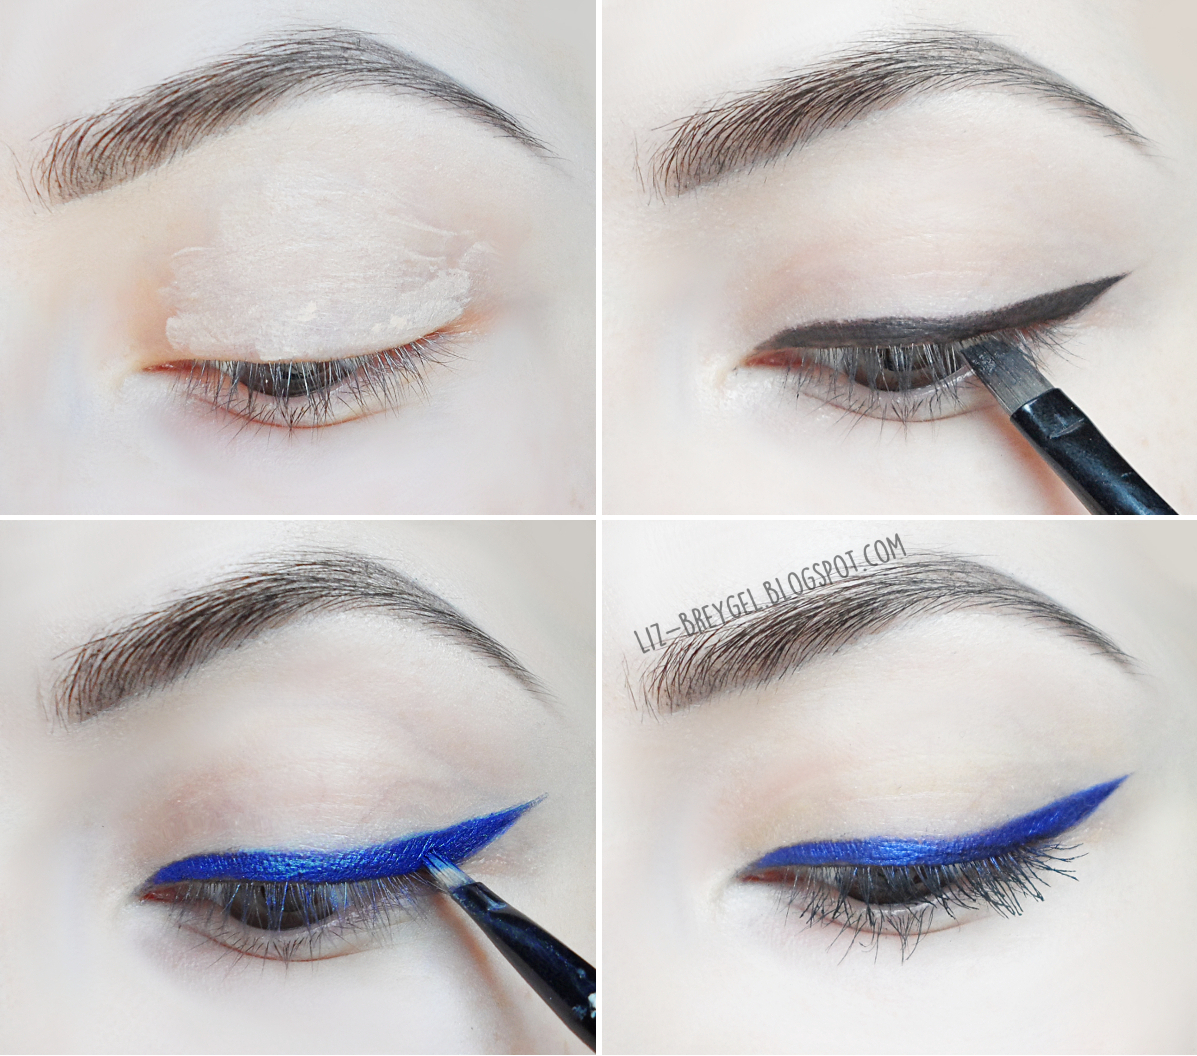 step by step perfect blue wing eyeliner tutorial with pictures by Liz Breygel on January Girl blog.